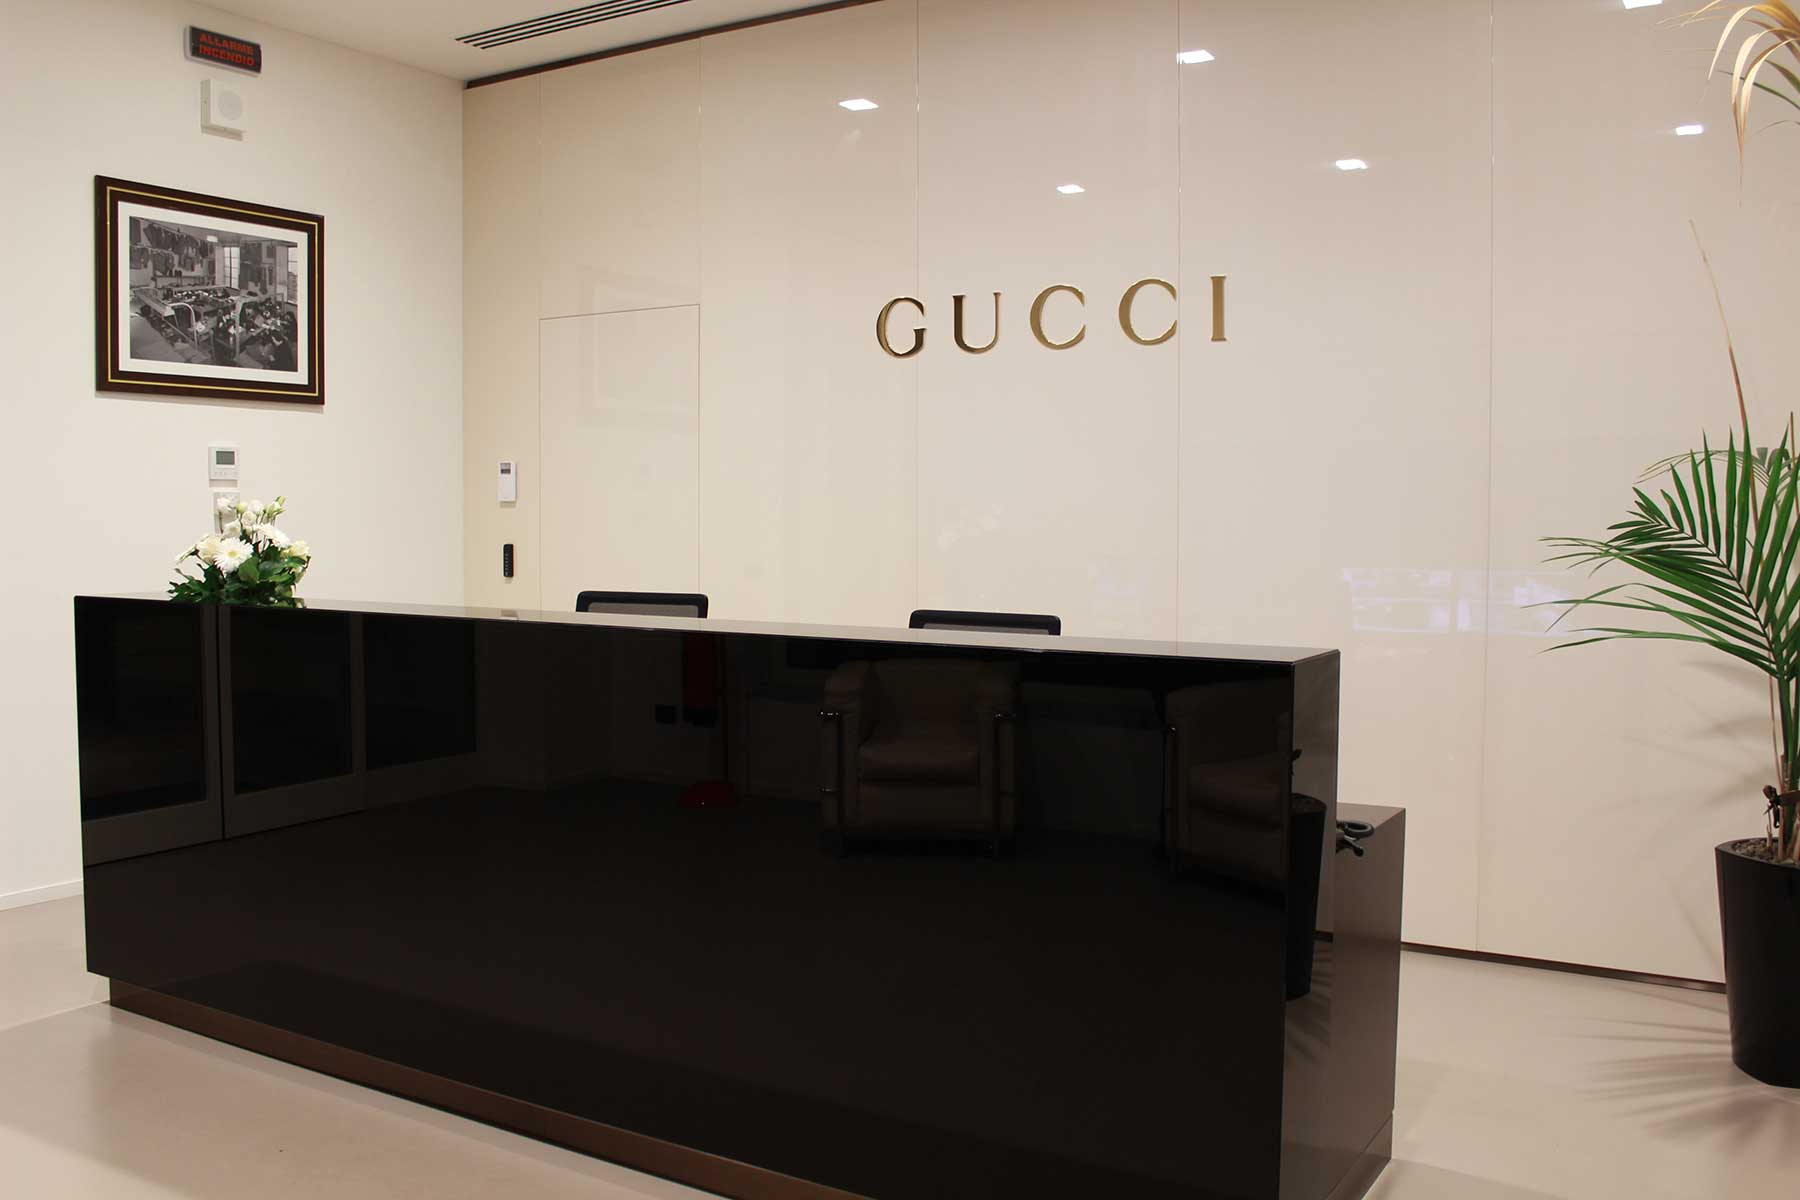 Gucci Ready To Wear Campus